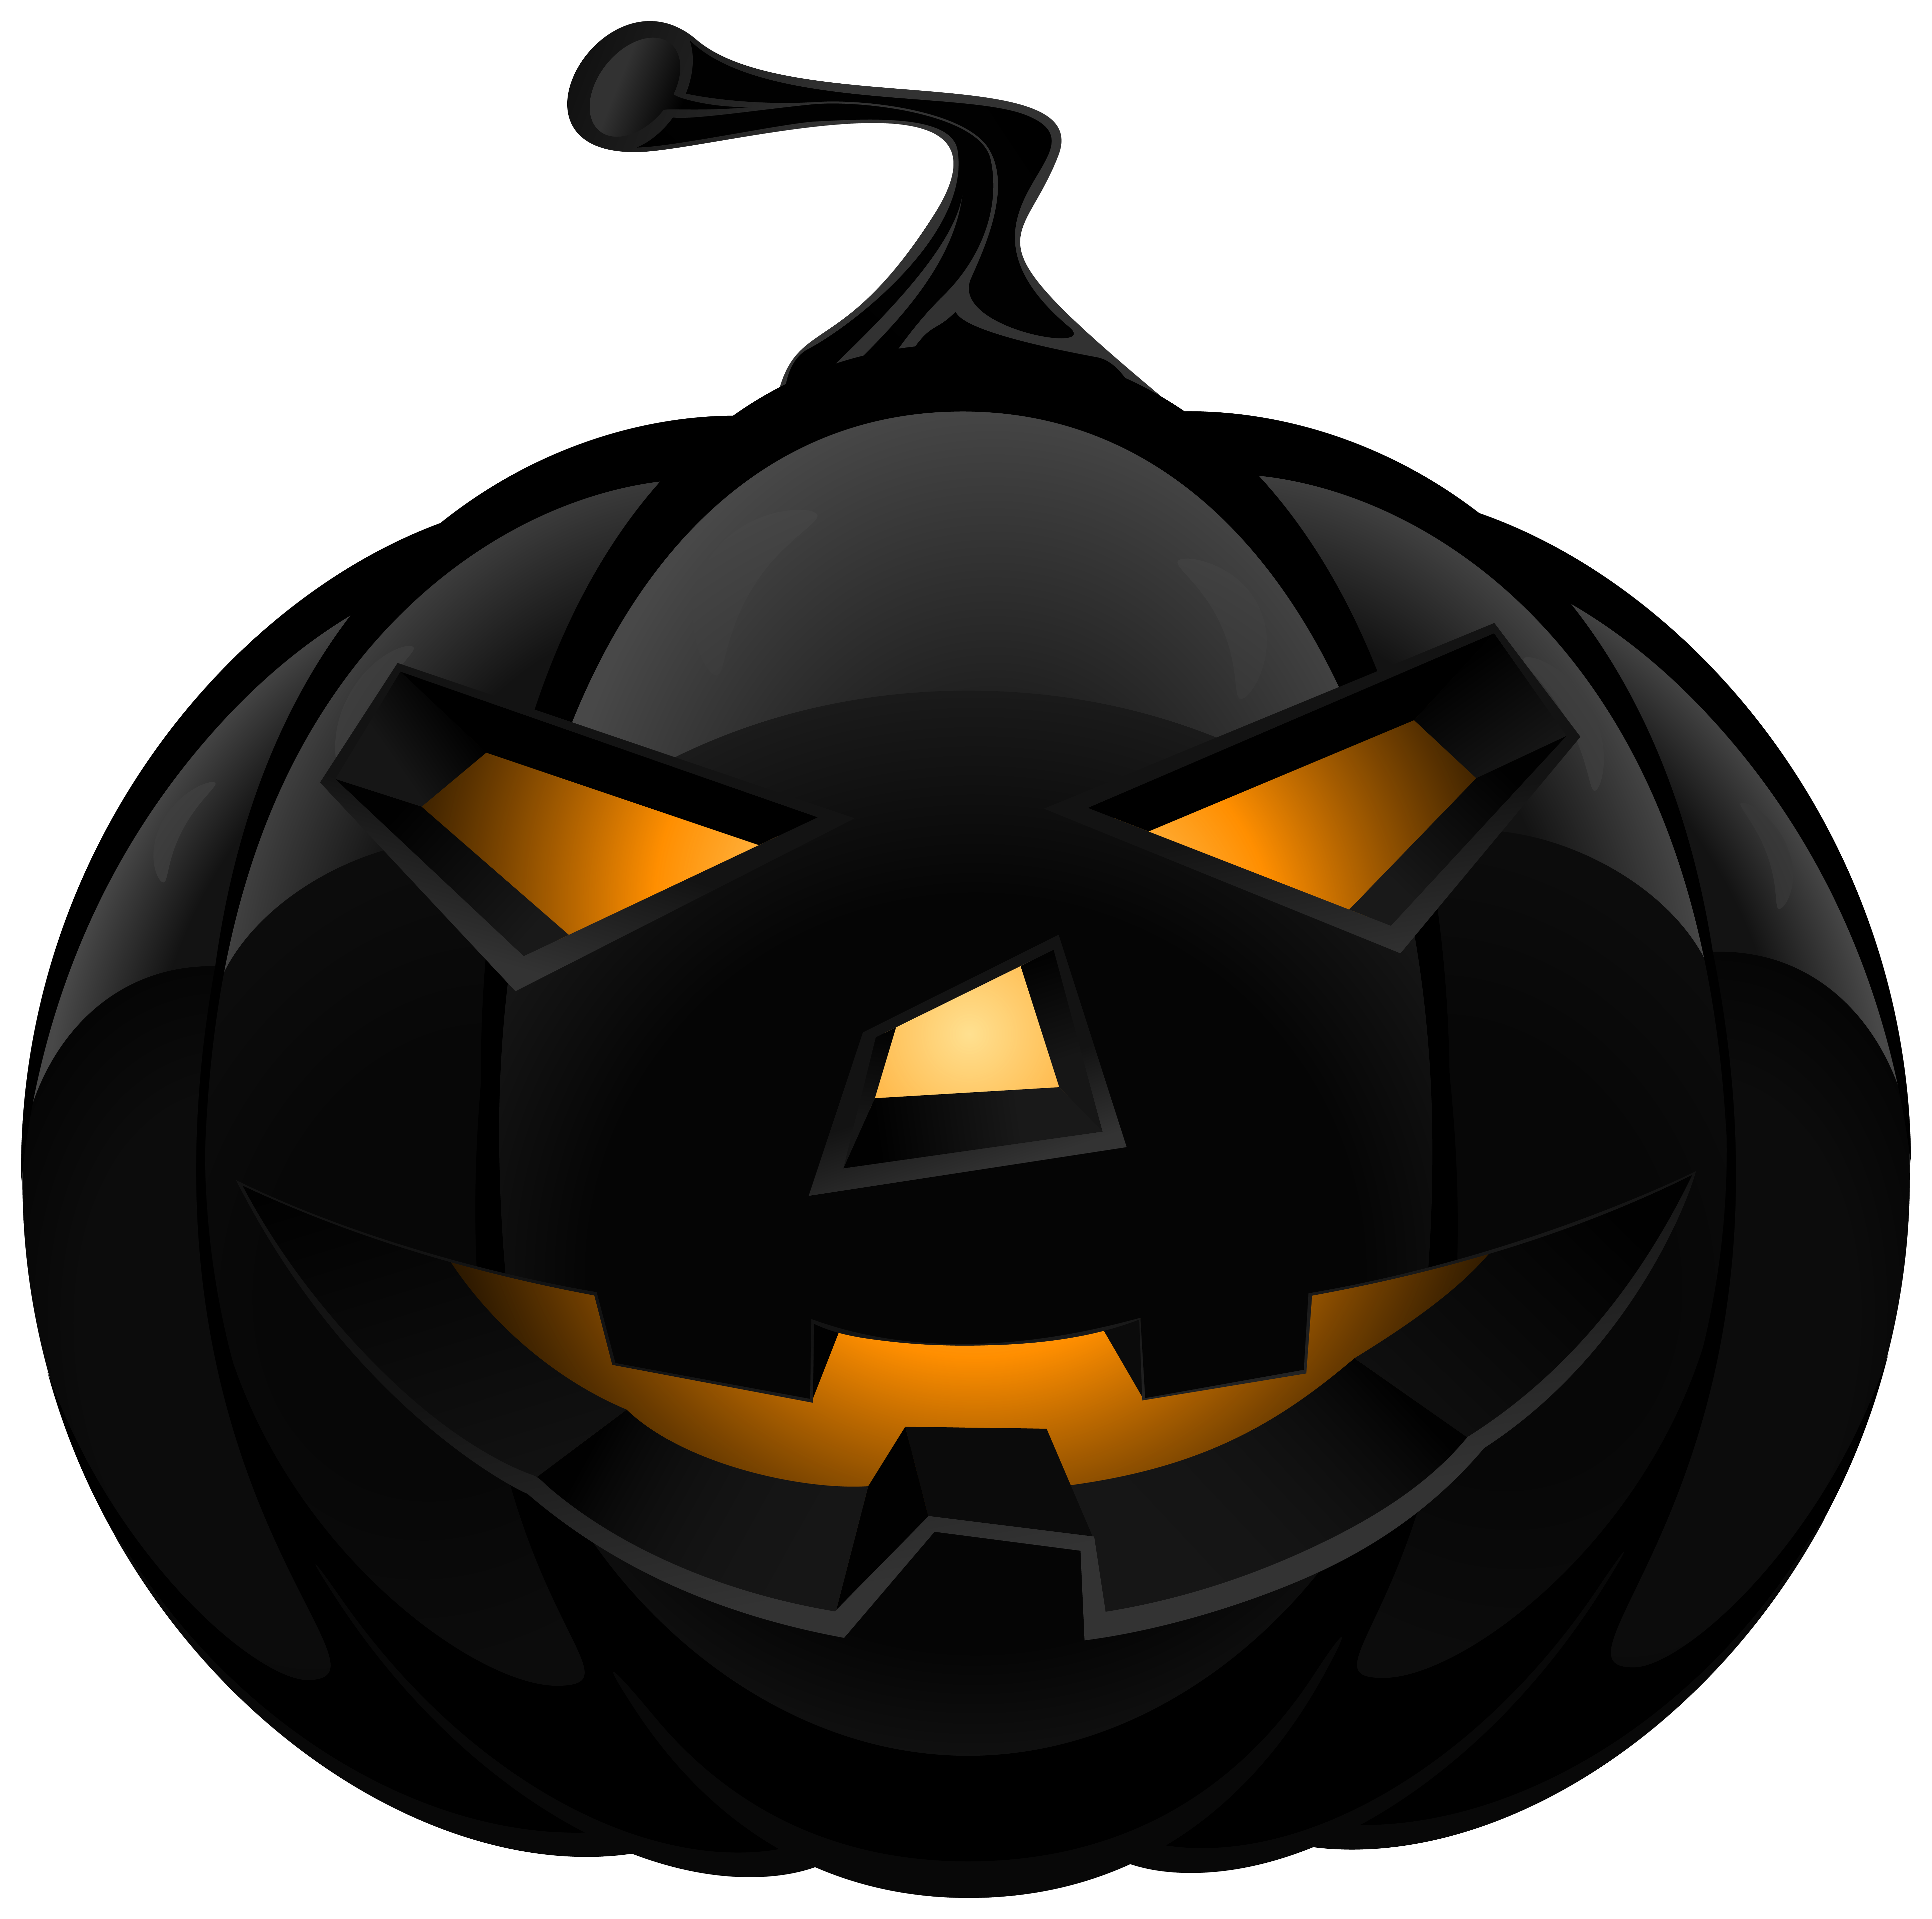 Scary clipart scary pumpkin patch. Black lantern png image